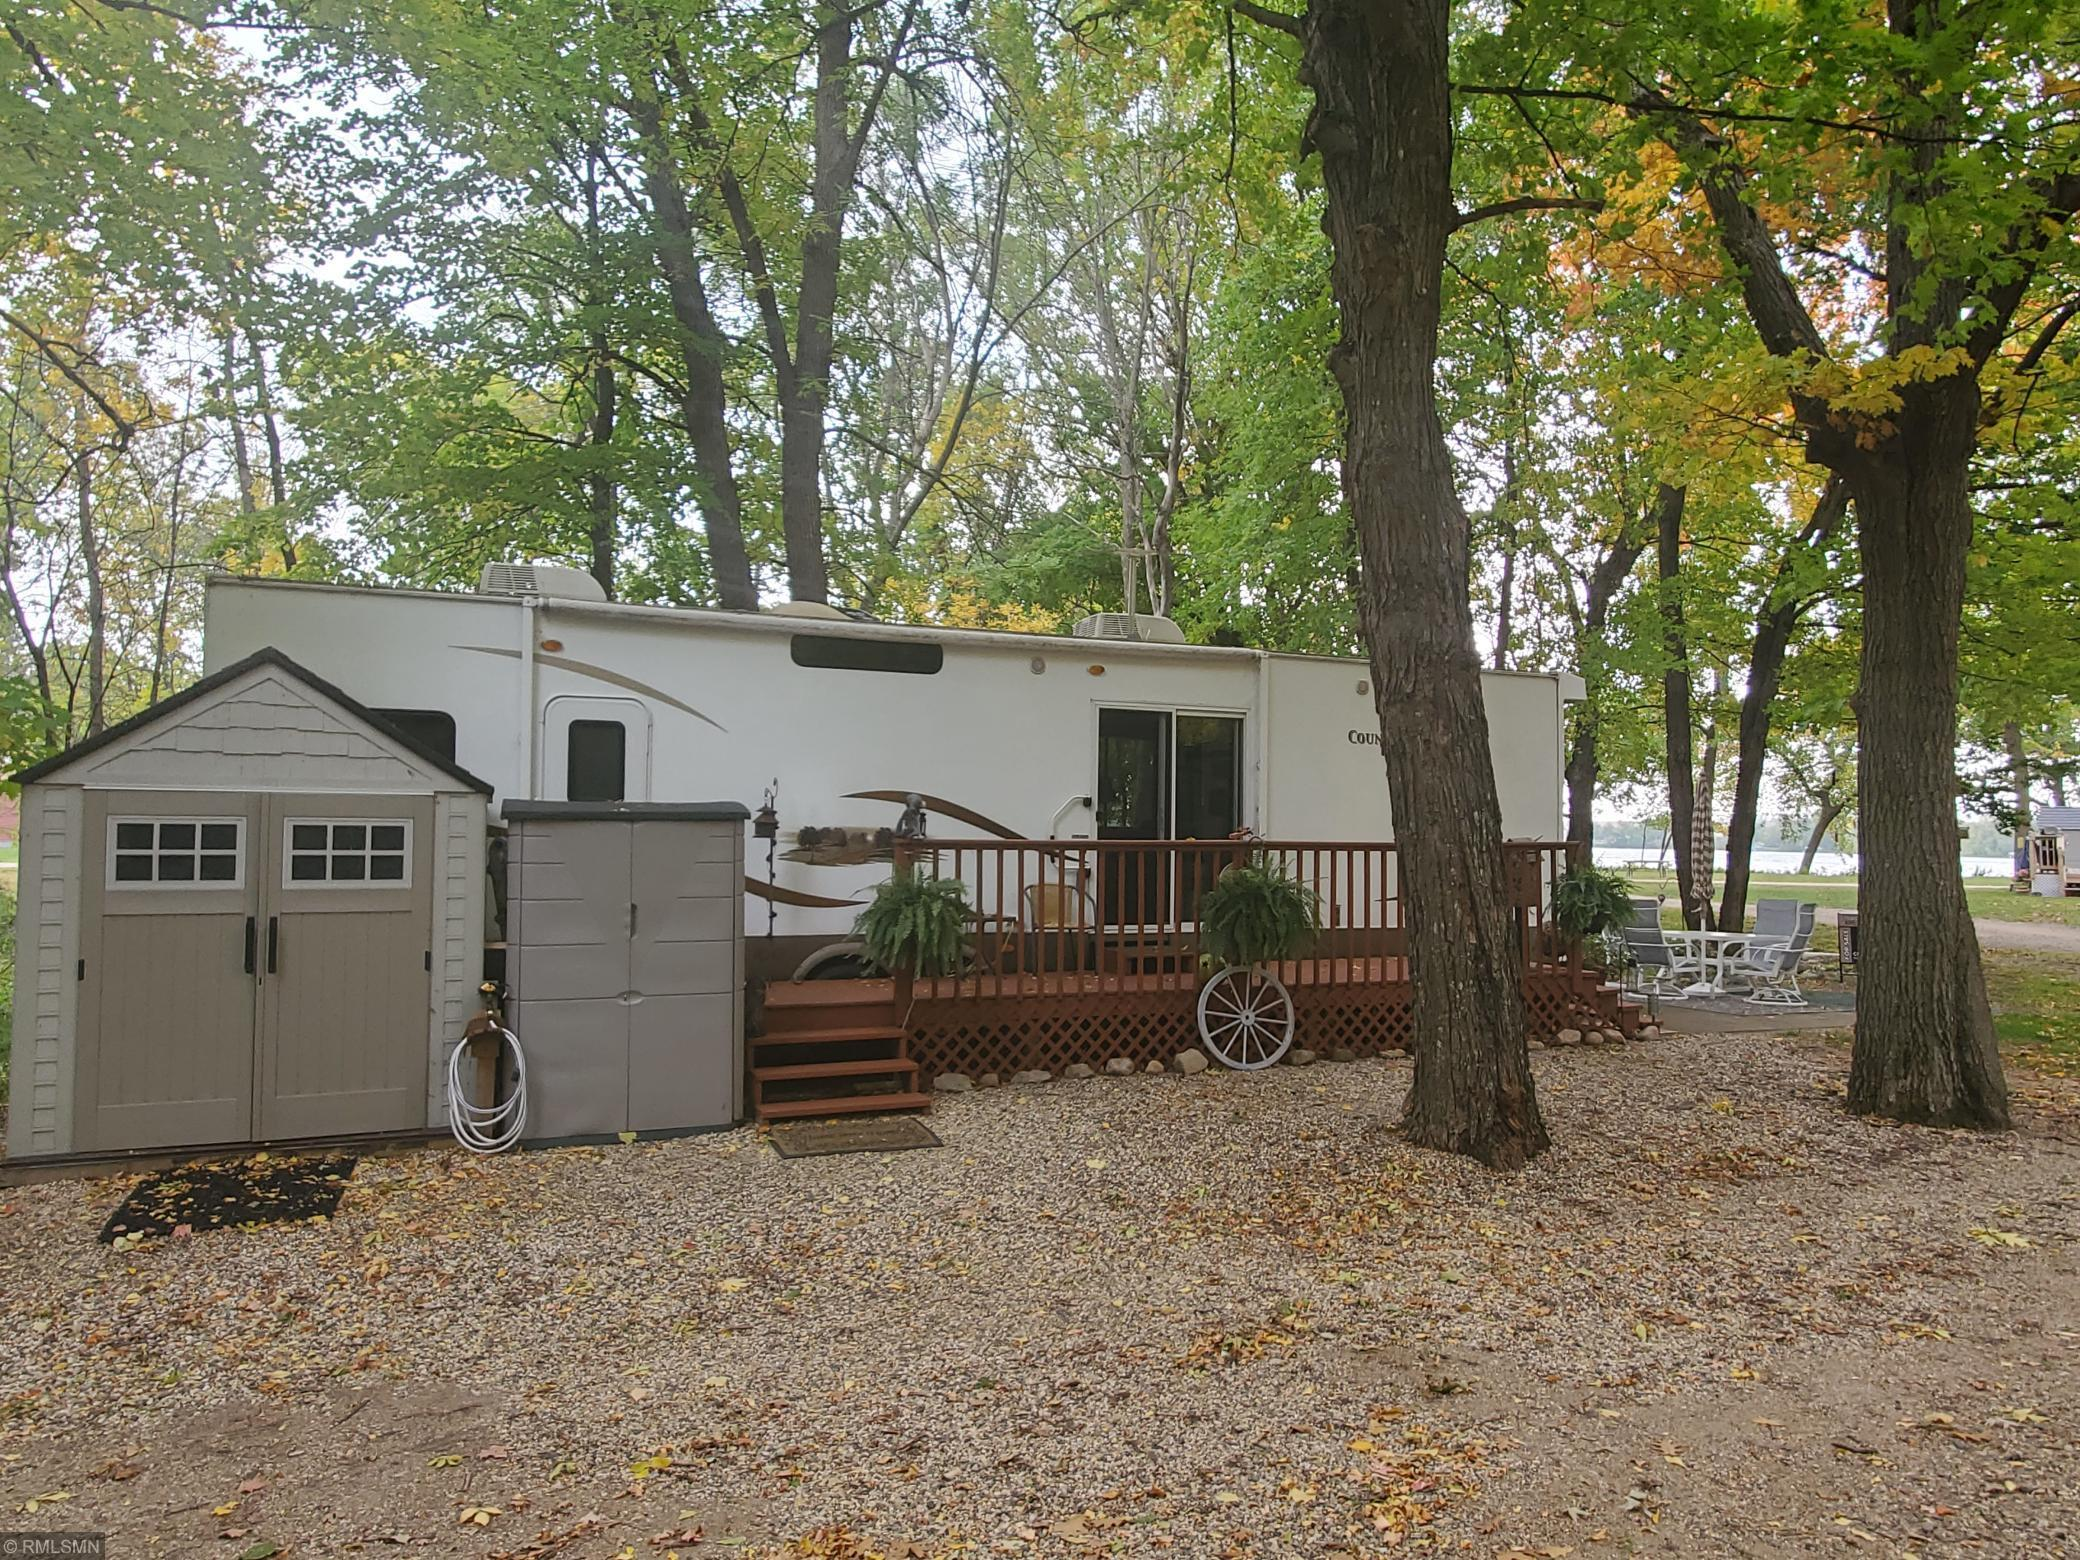 13240 Devils Lake Road NW #15 Property Photo - Brandon, MN real estate listing